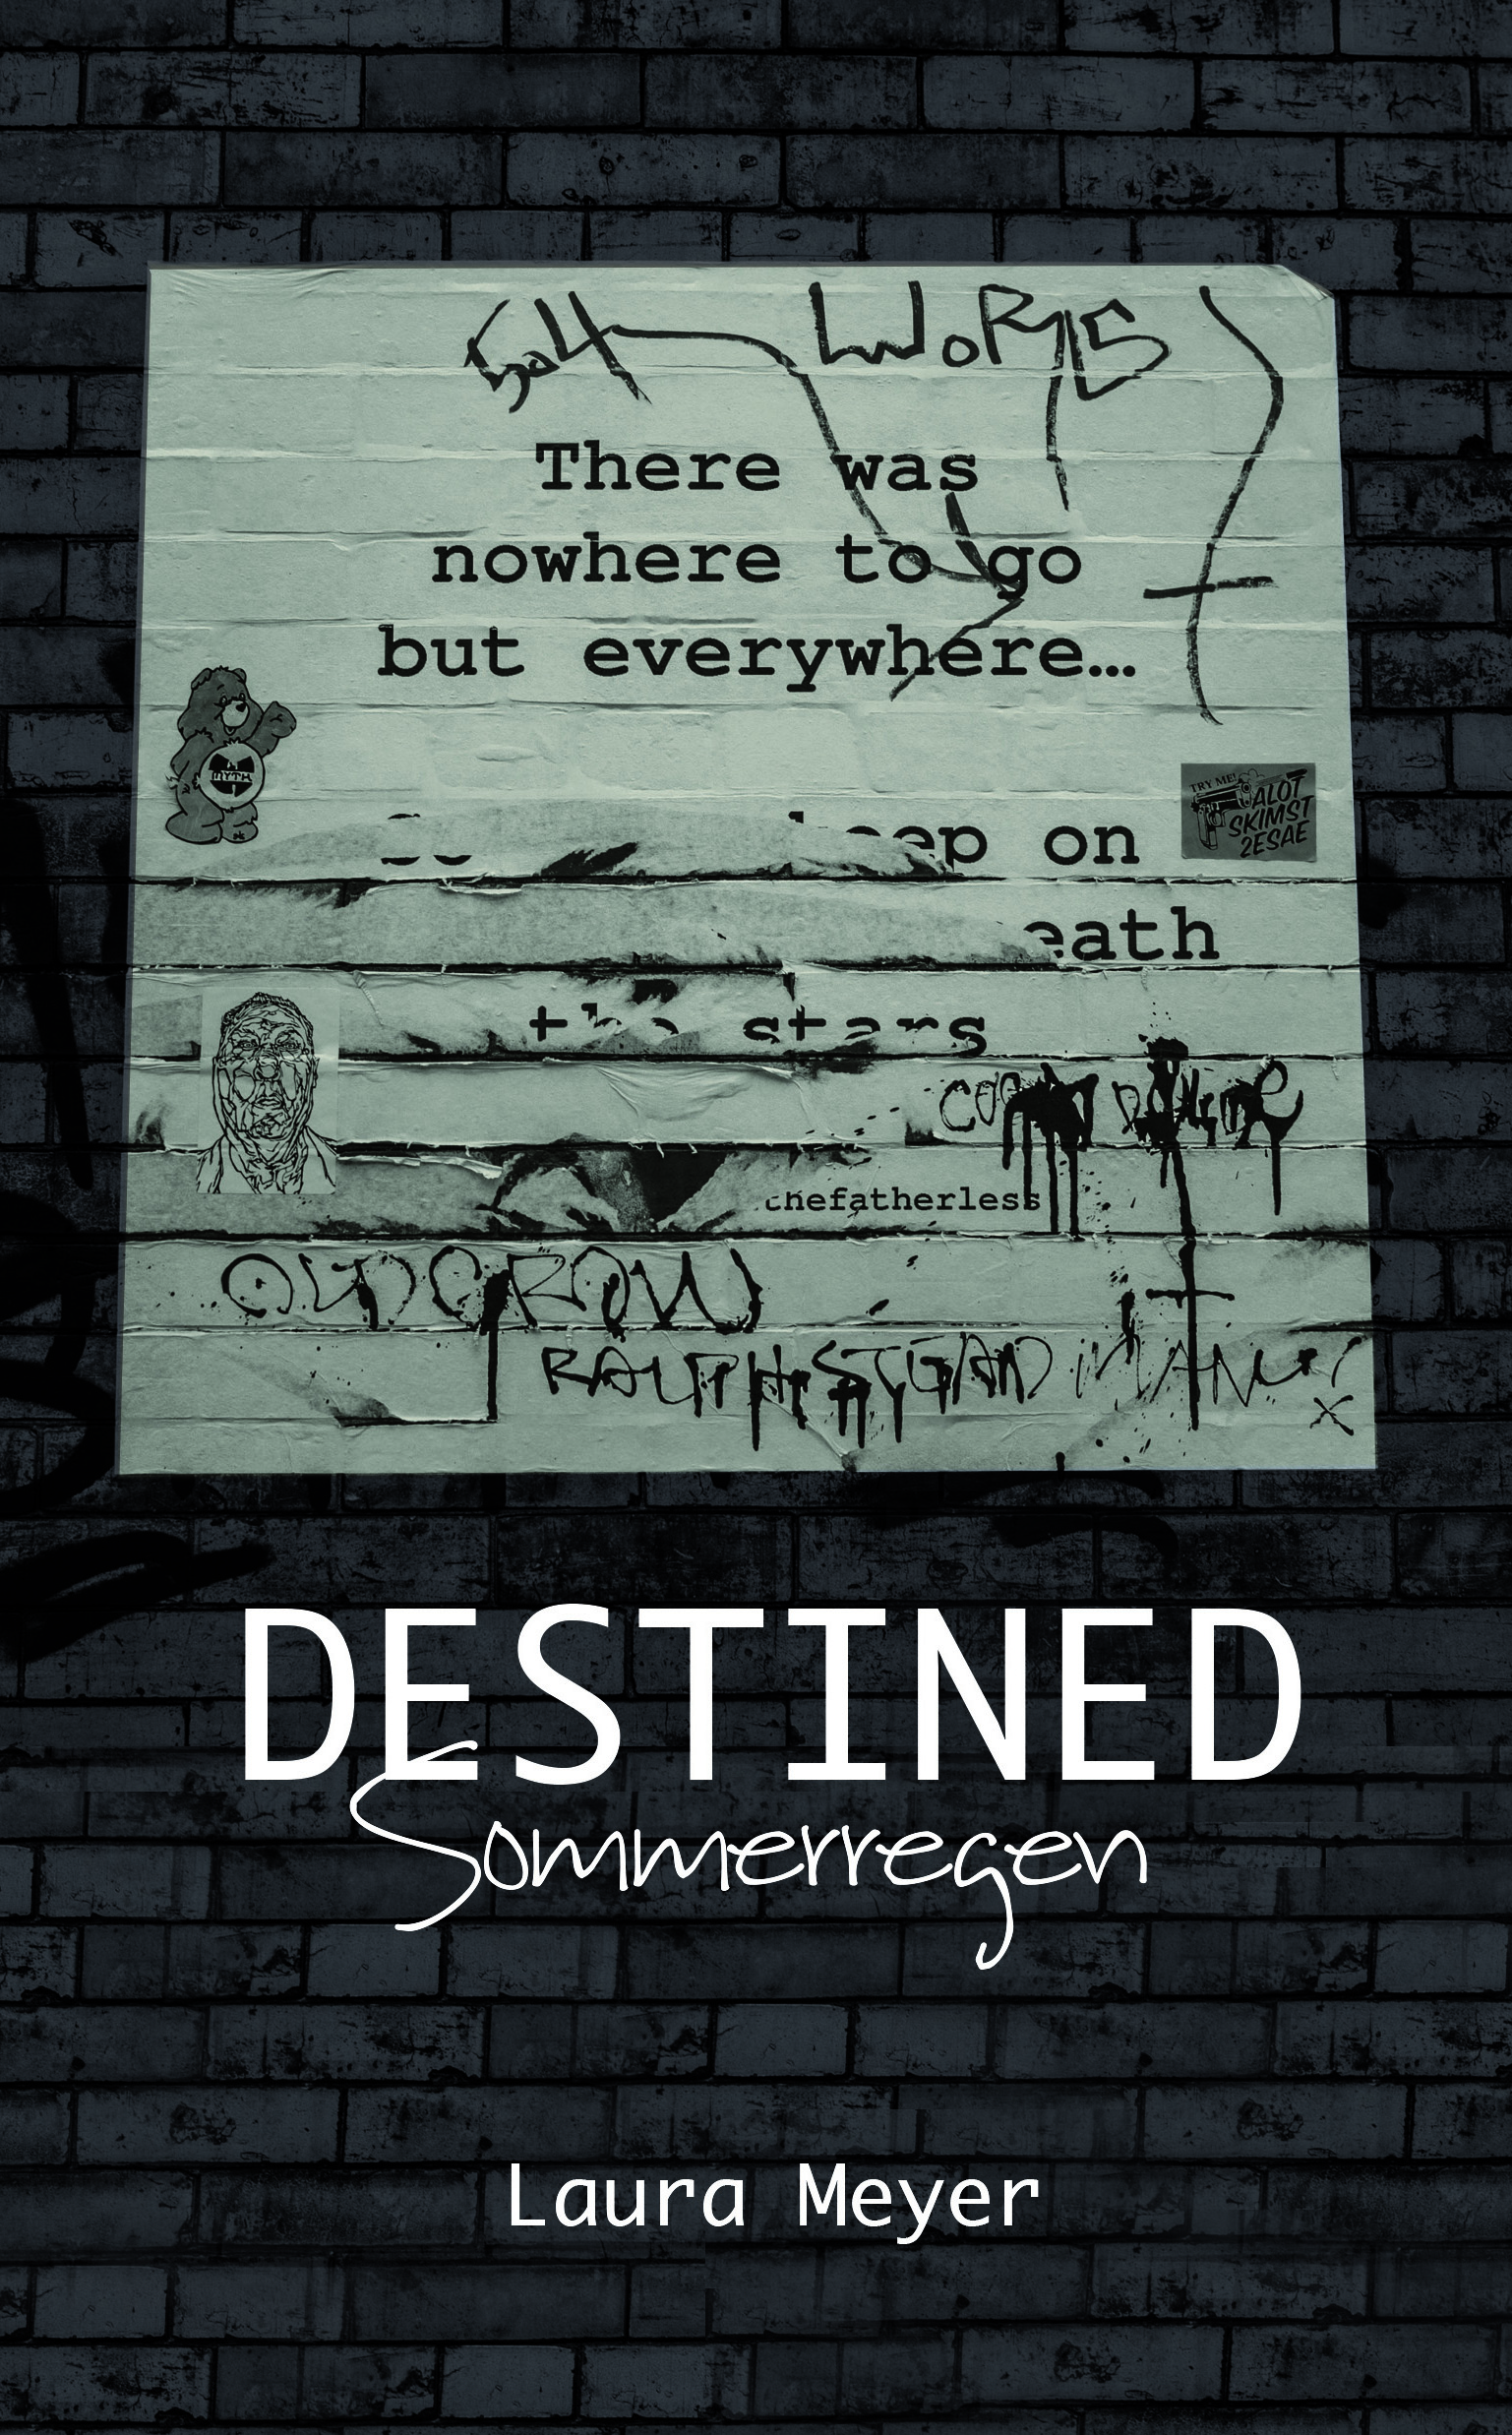 DESTINED - Sommerregen von Laura Meyer